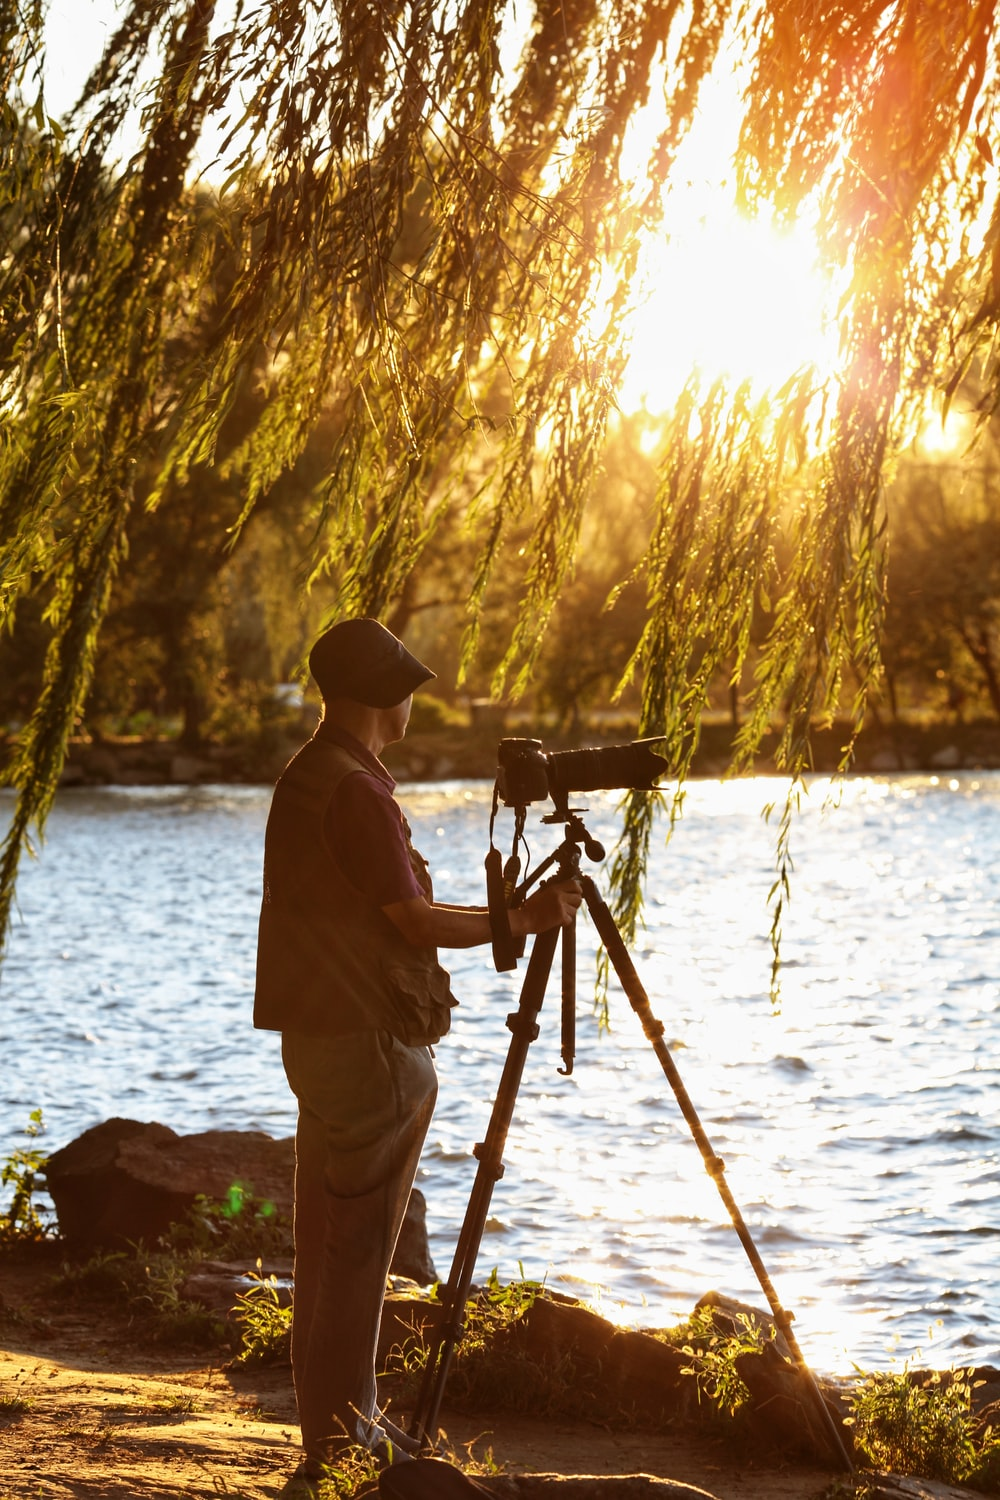 man standing beside DSLR camera with stand near body of water during sunset